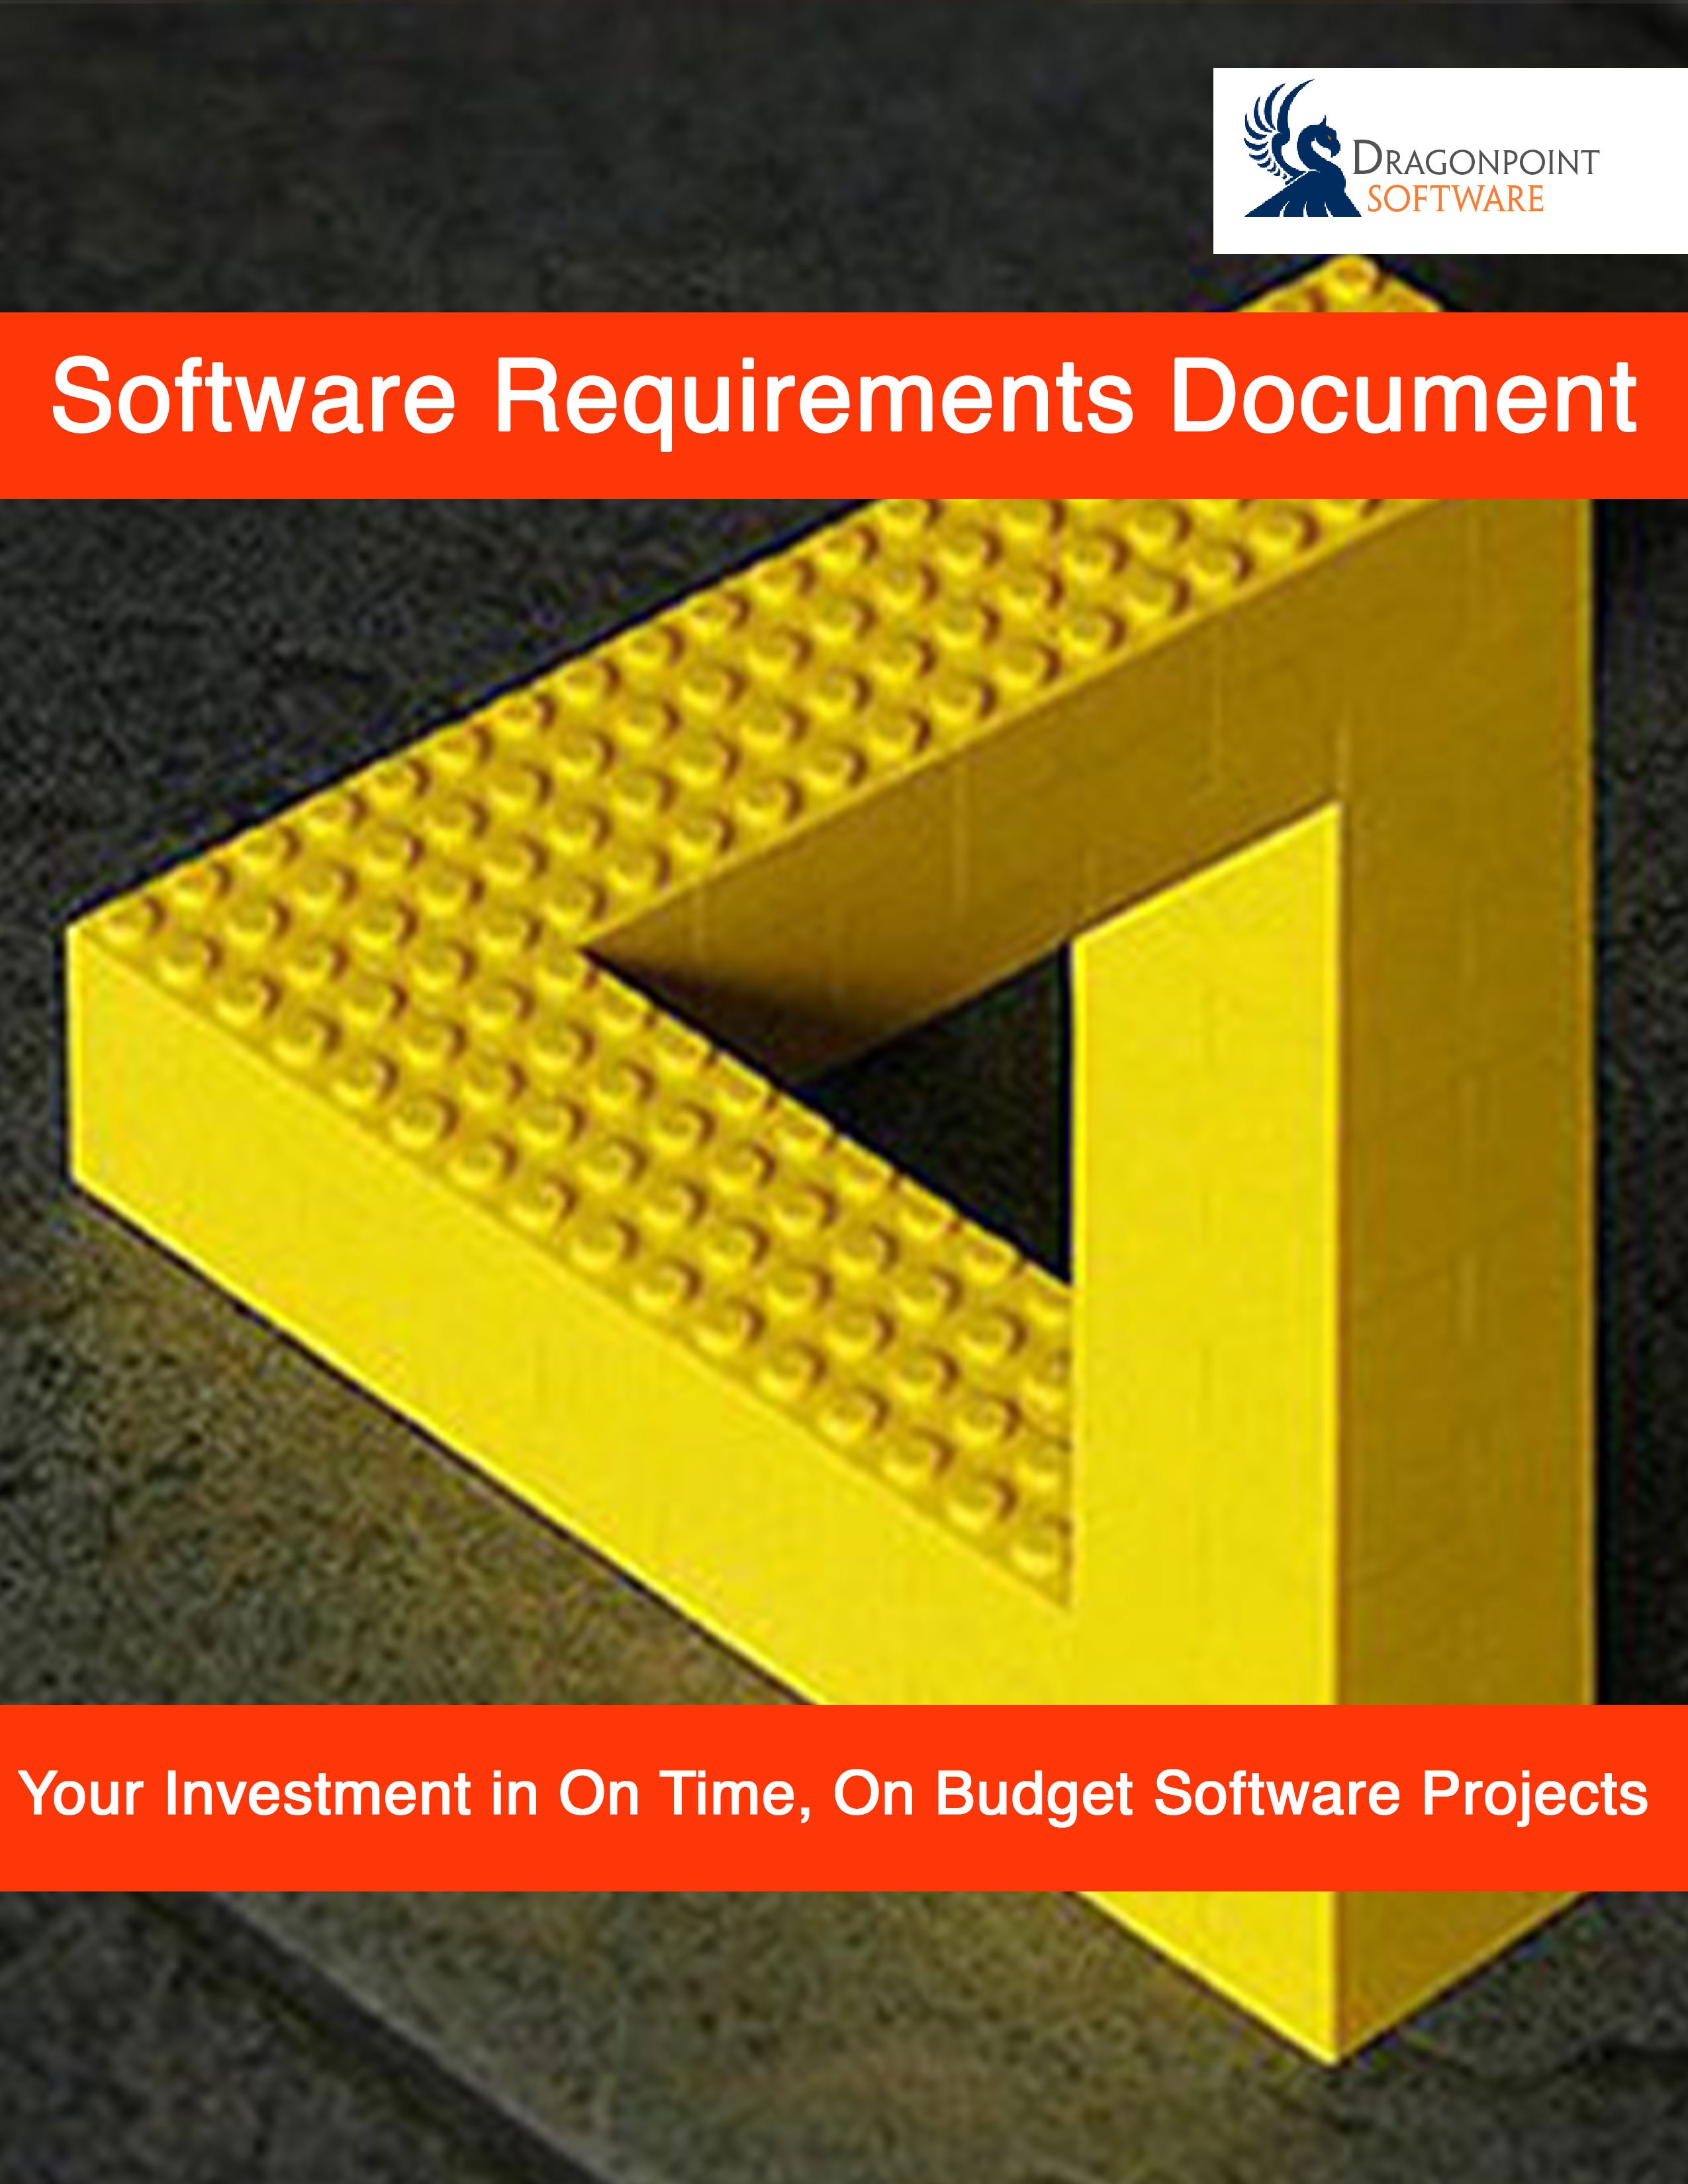 Software Requirements Guide